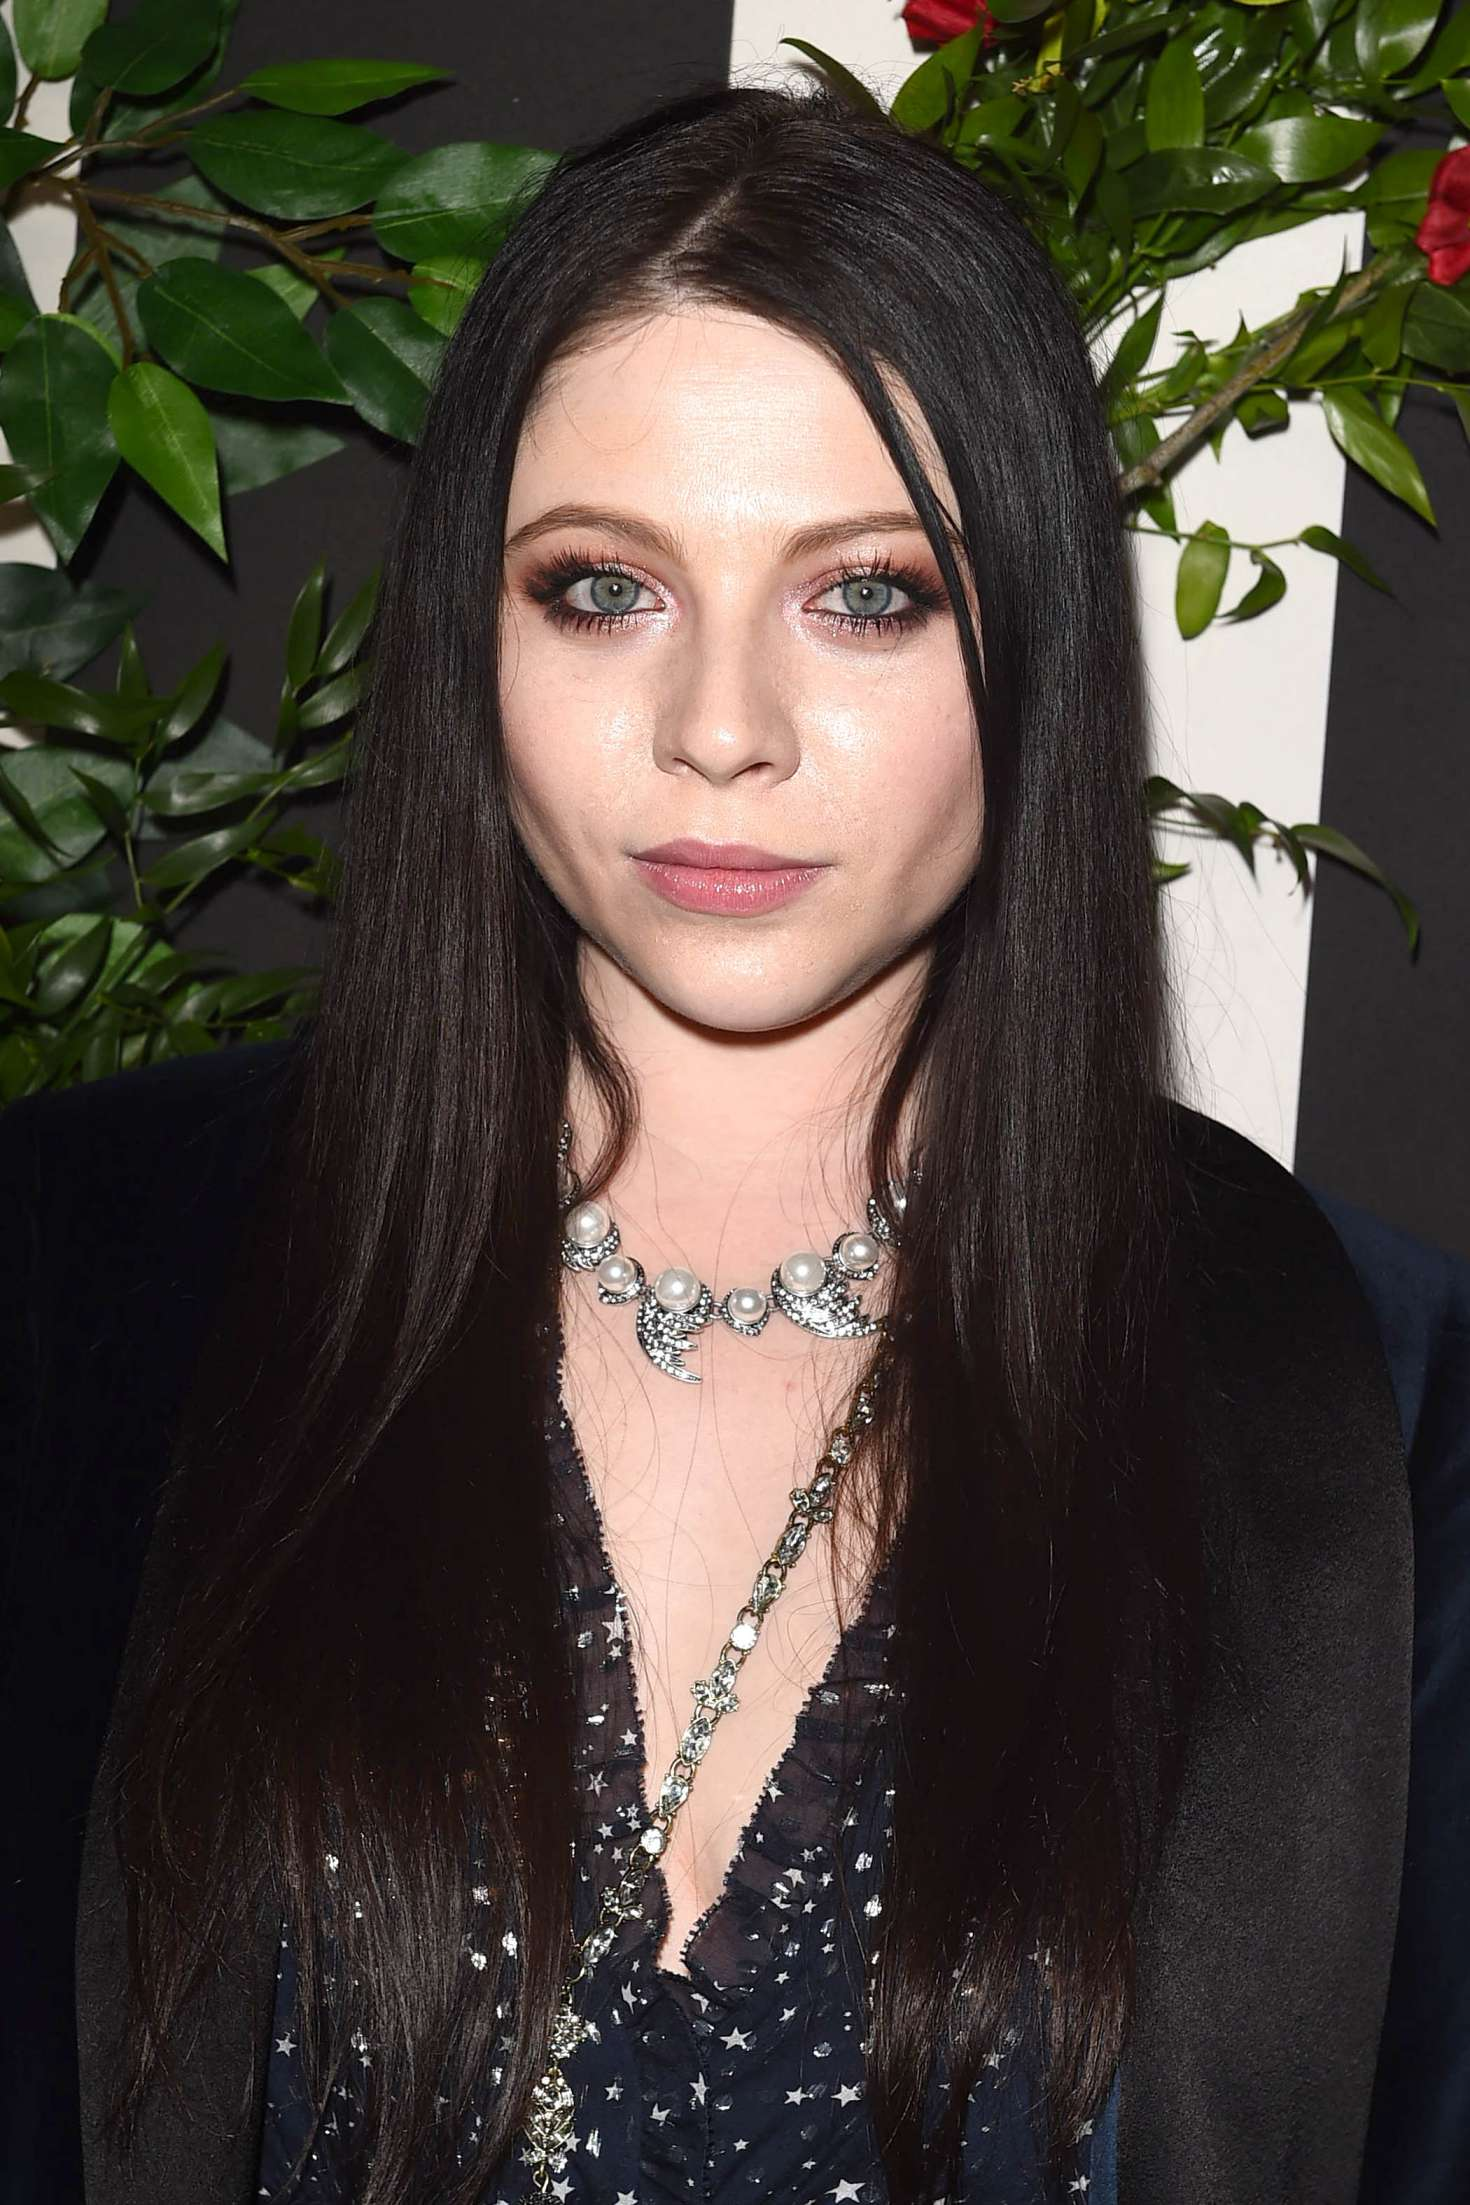 Michelle Trachtenberg - LAND of Distraction Launch Event in Los Angeles